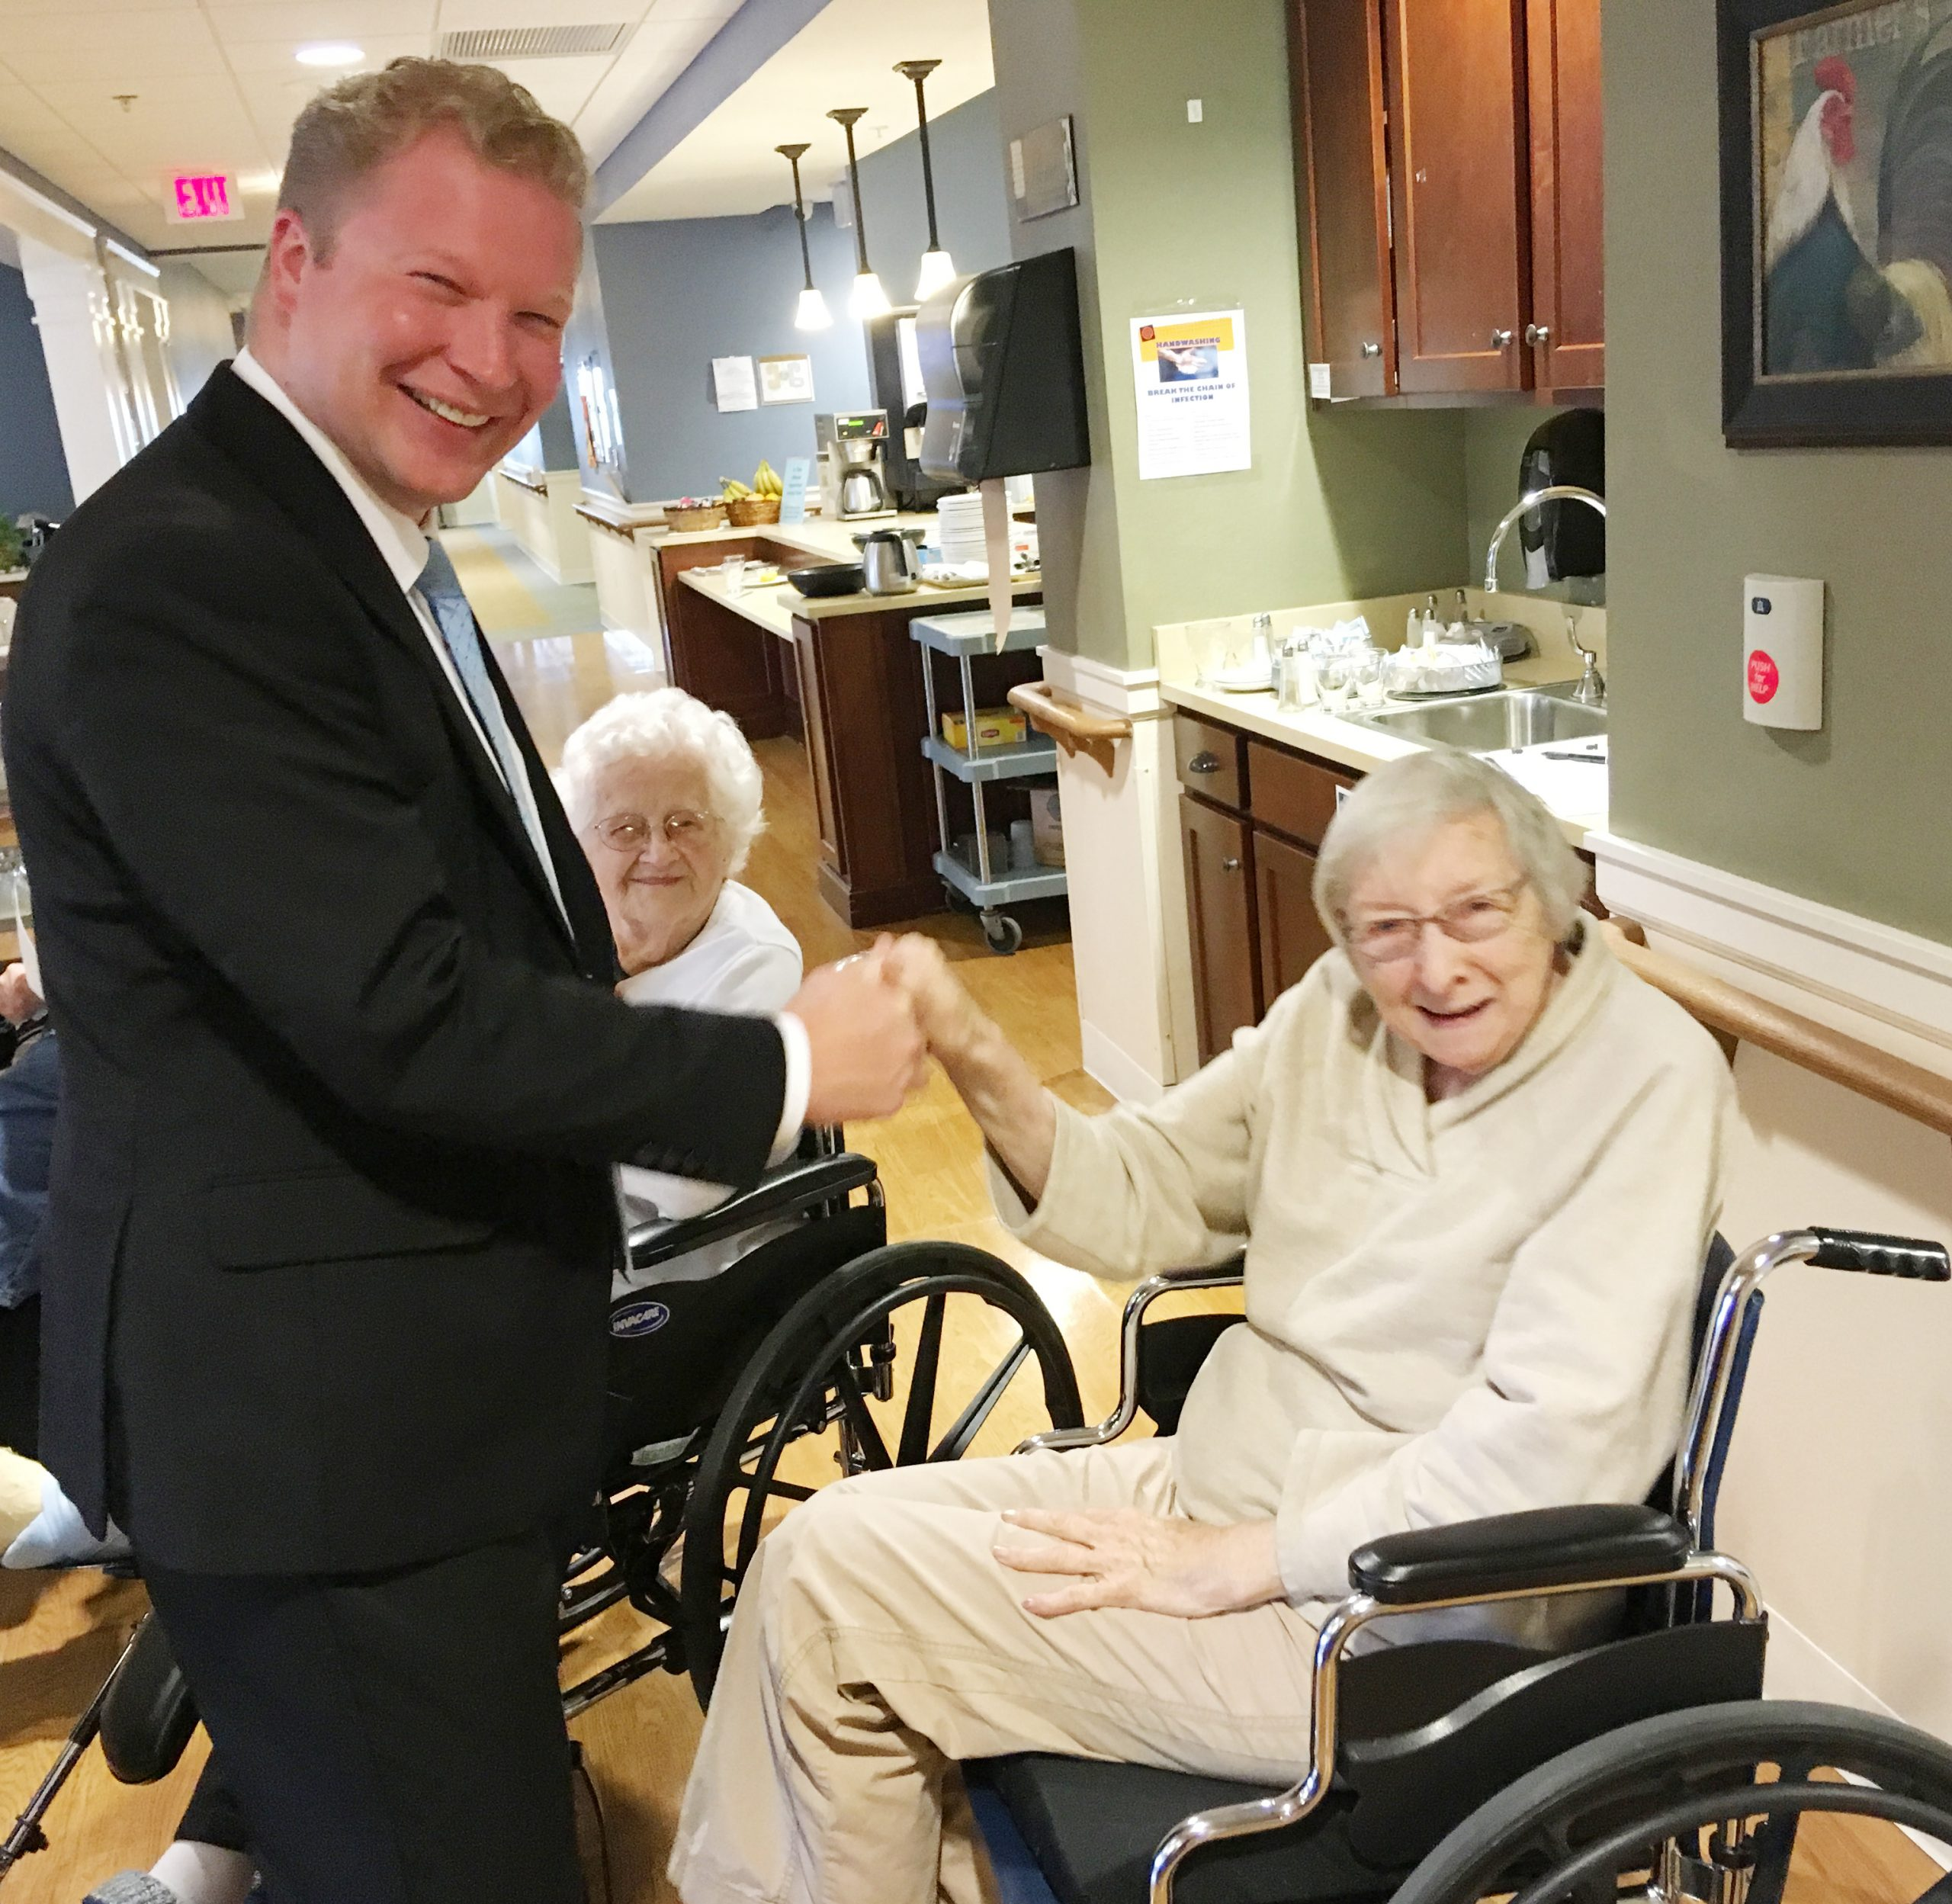 Manitowoc Mayor Names October Long-Term Care Residents' Rights Month